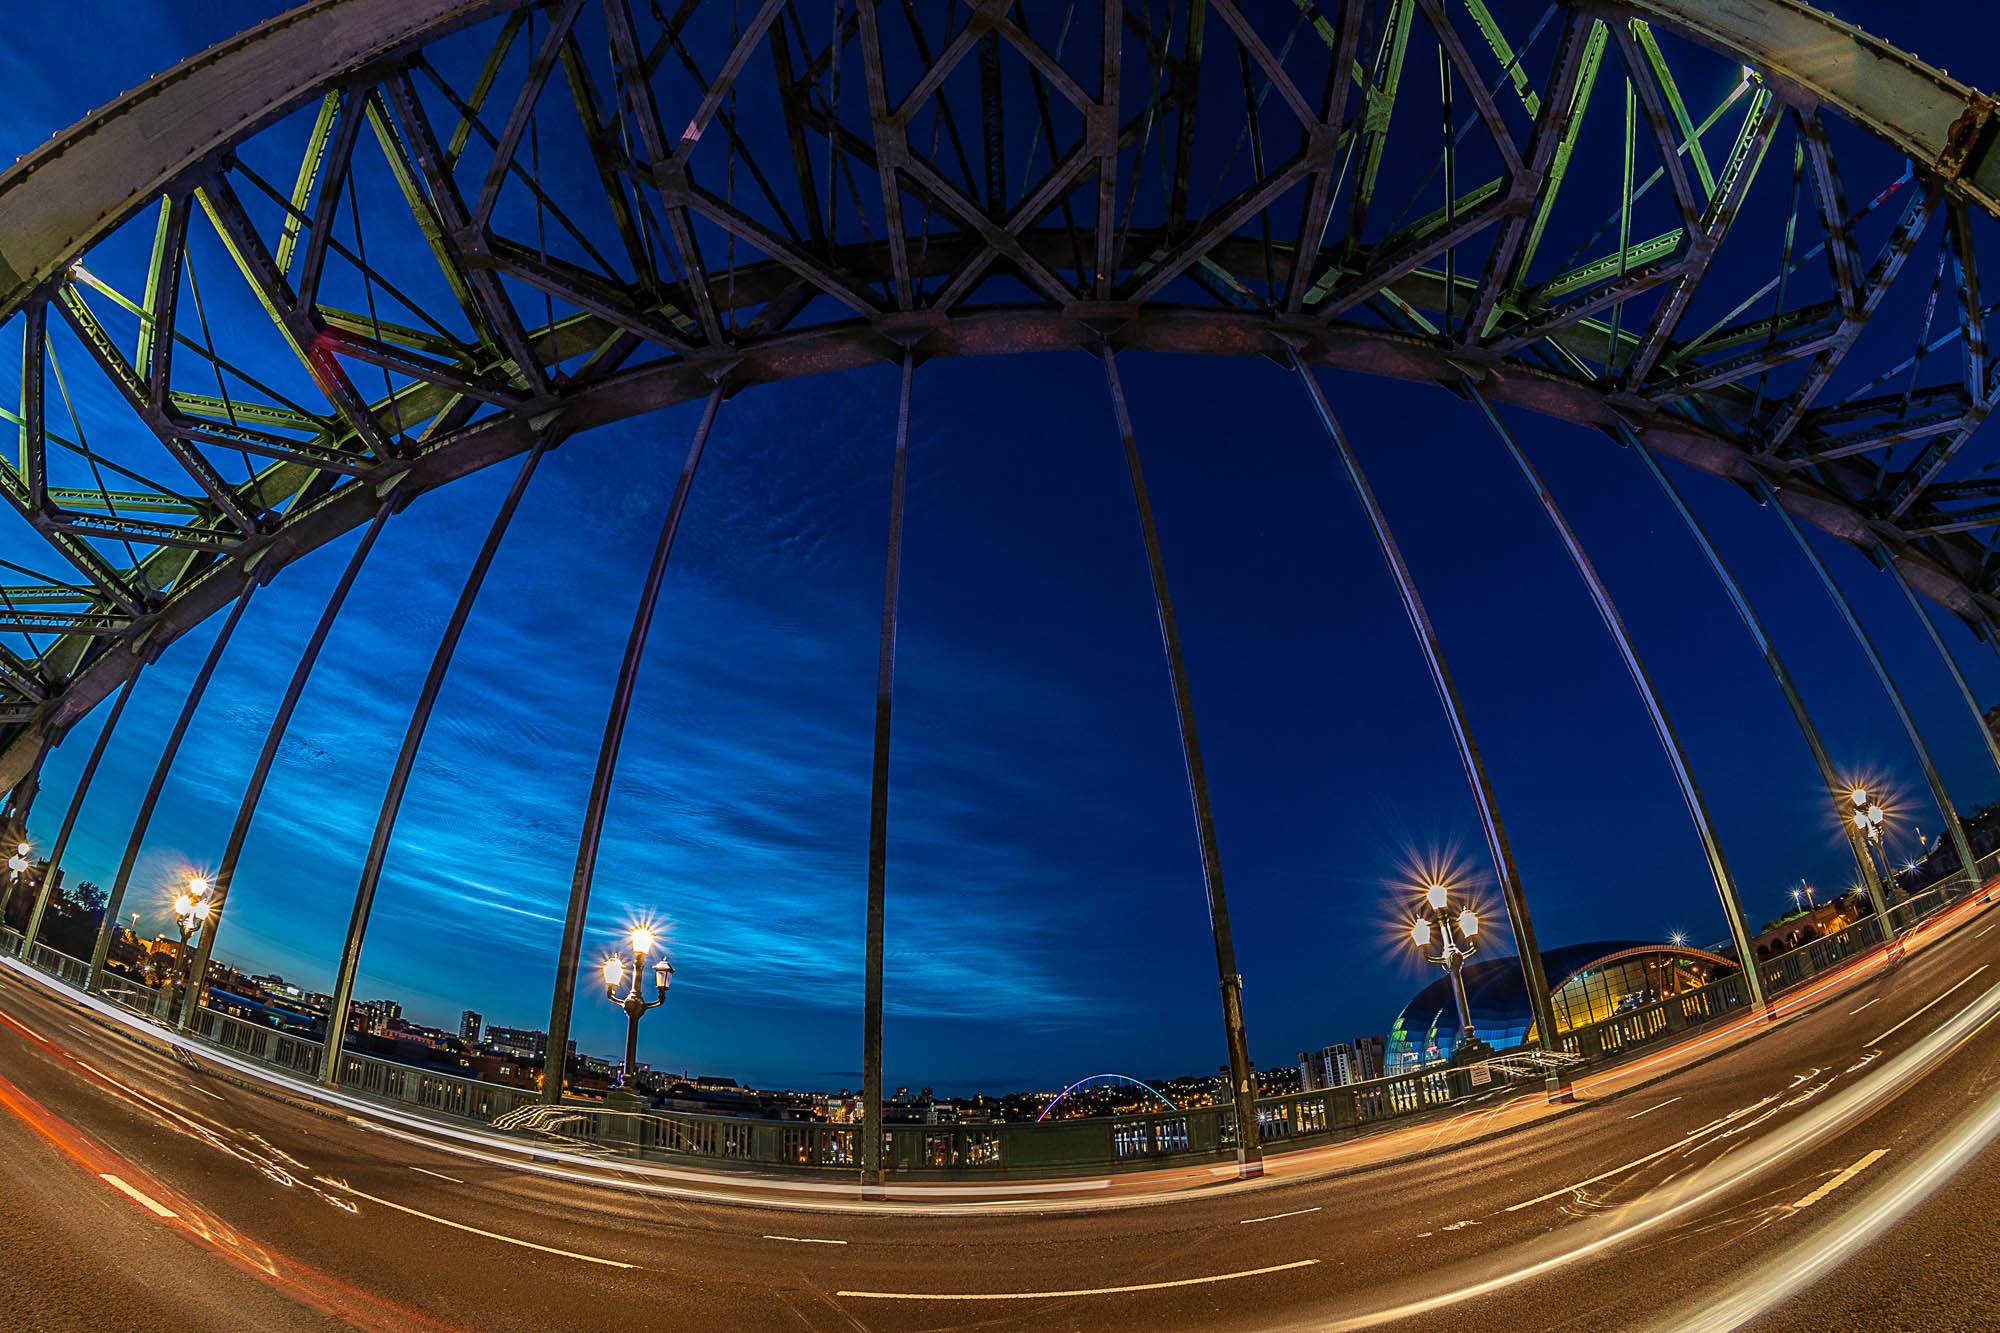 Night shot of the Tyne Bridge and the Newcastle and Gateshead quaysides on the river Tyne glowing, with rare Noctilucent clouds in the sky. Taken with a 7.5mm Fisheye lens.